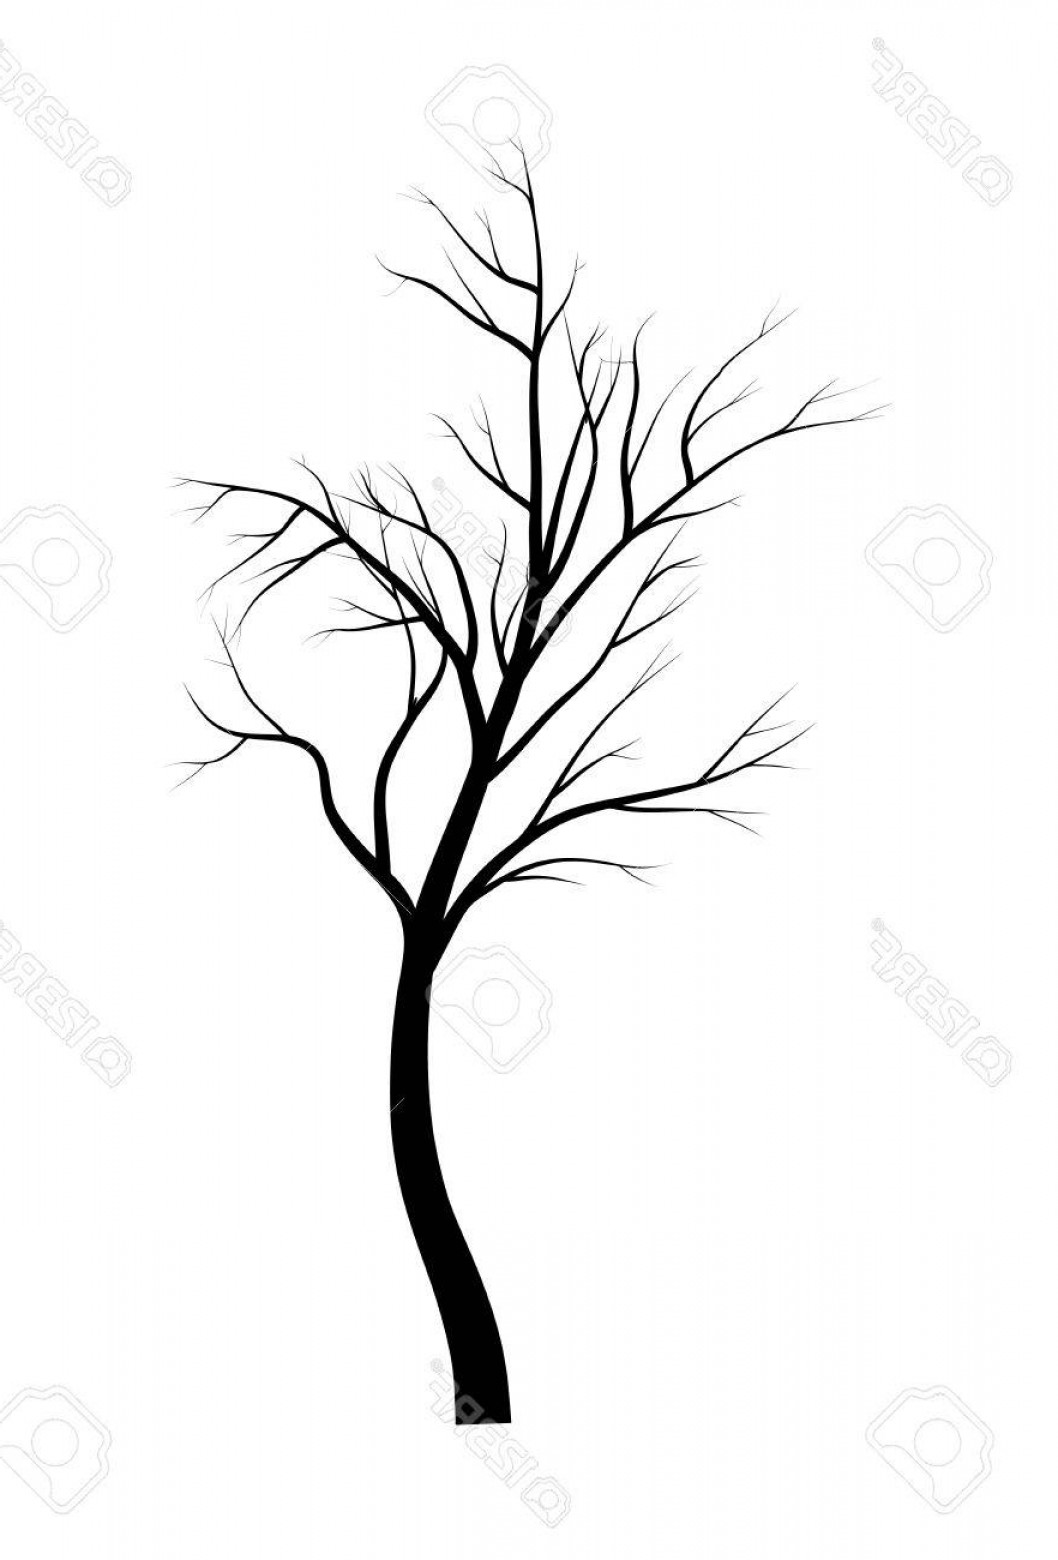 1058x1560 Silhouette Vector Tree Branch Art SHOPATCLOTH